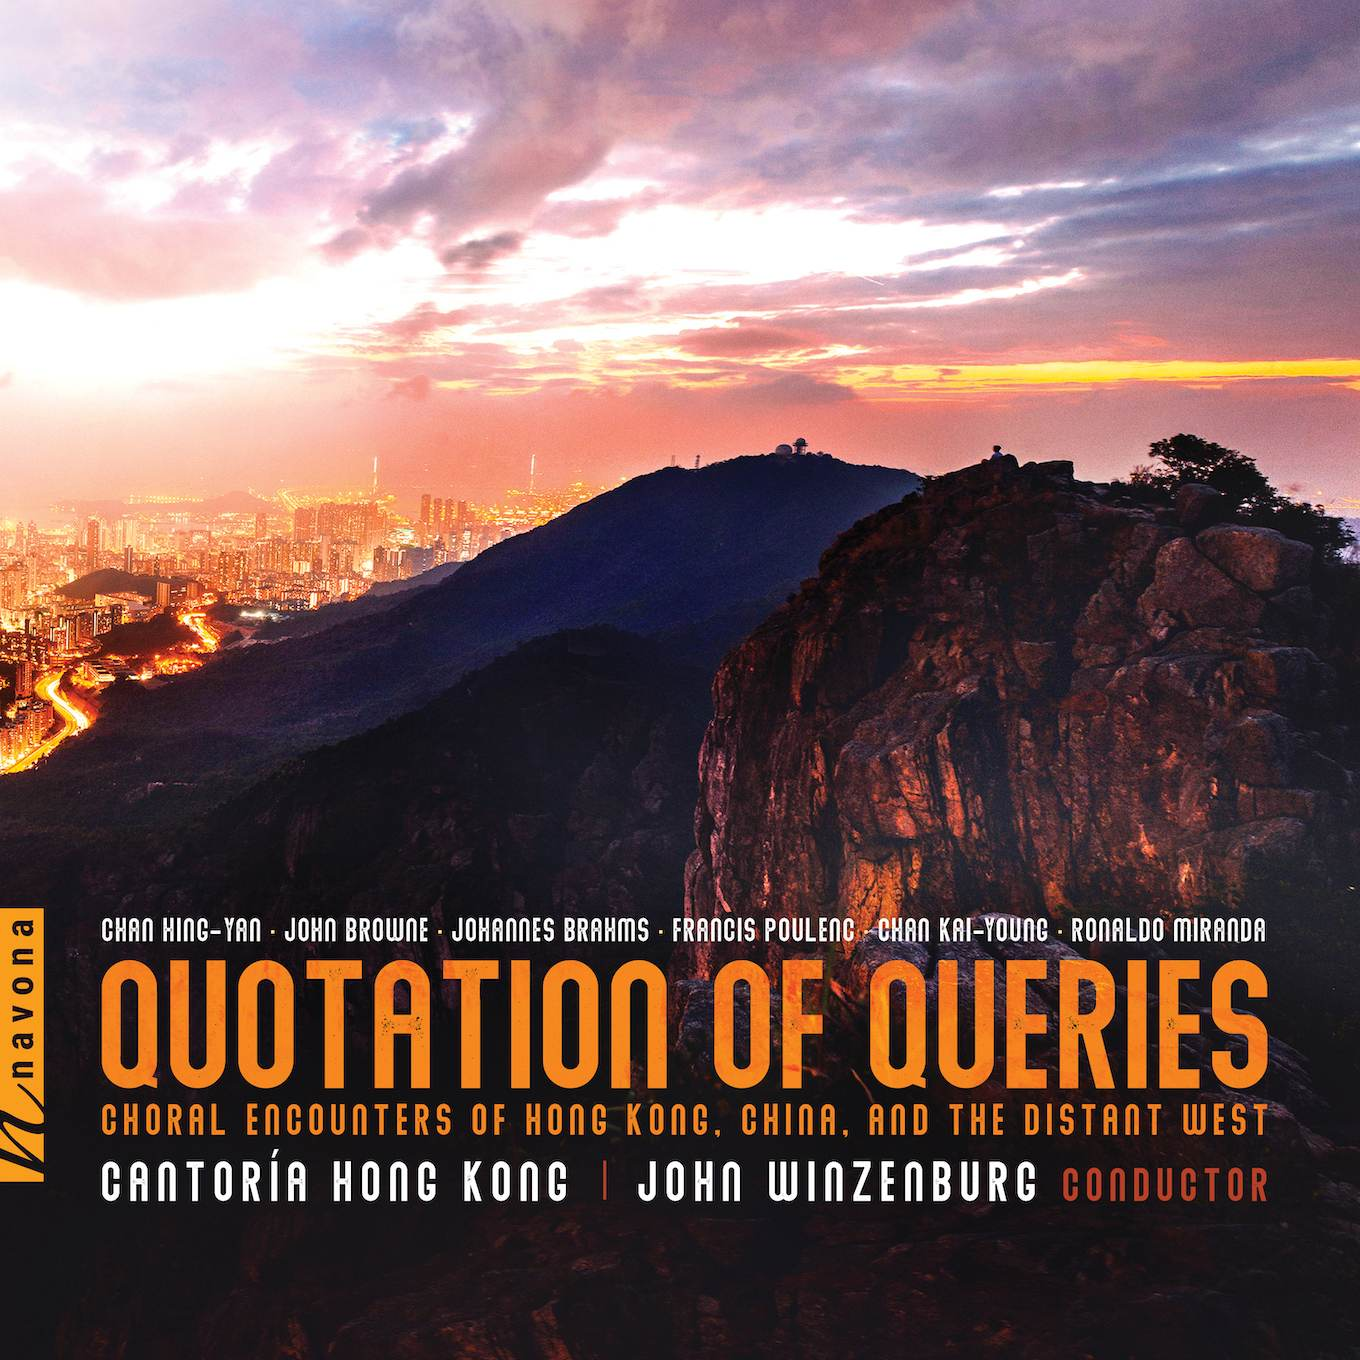 Quotation of Queries - John Winzenburg - Album Cover